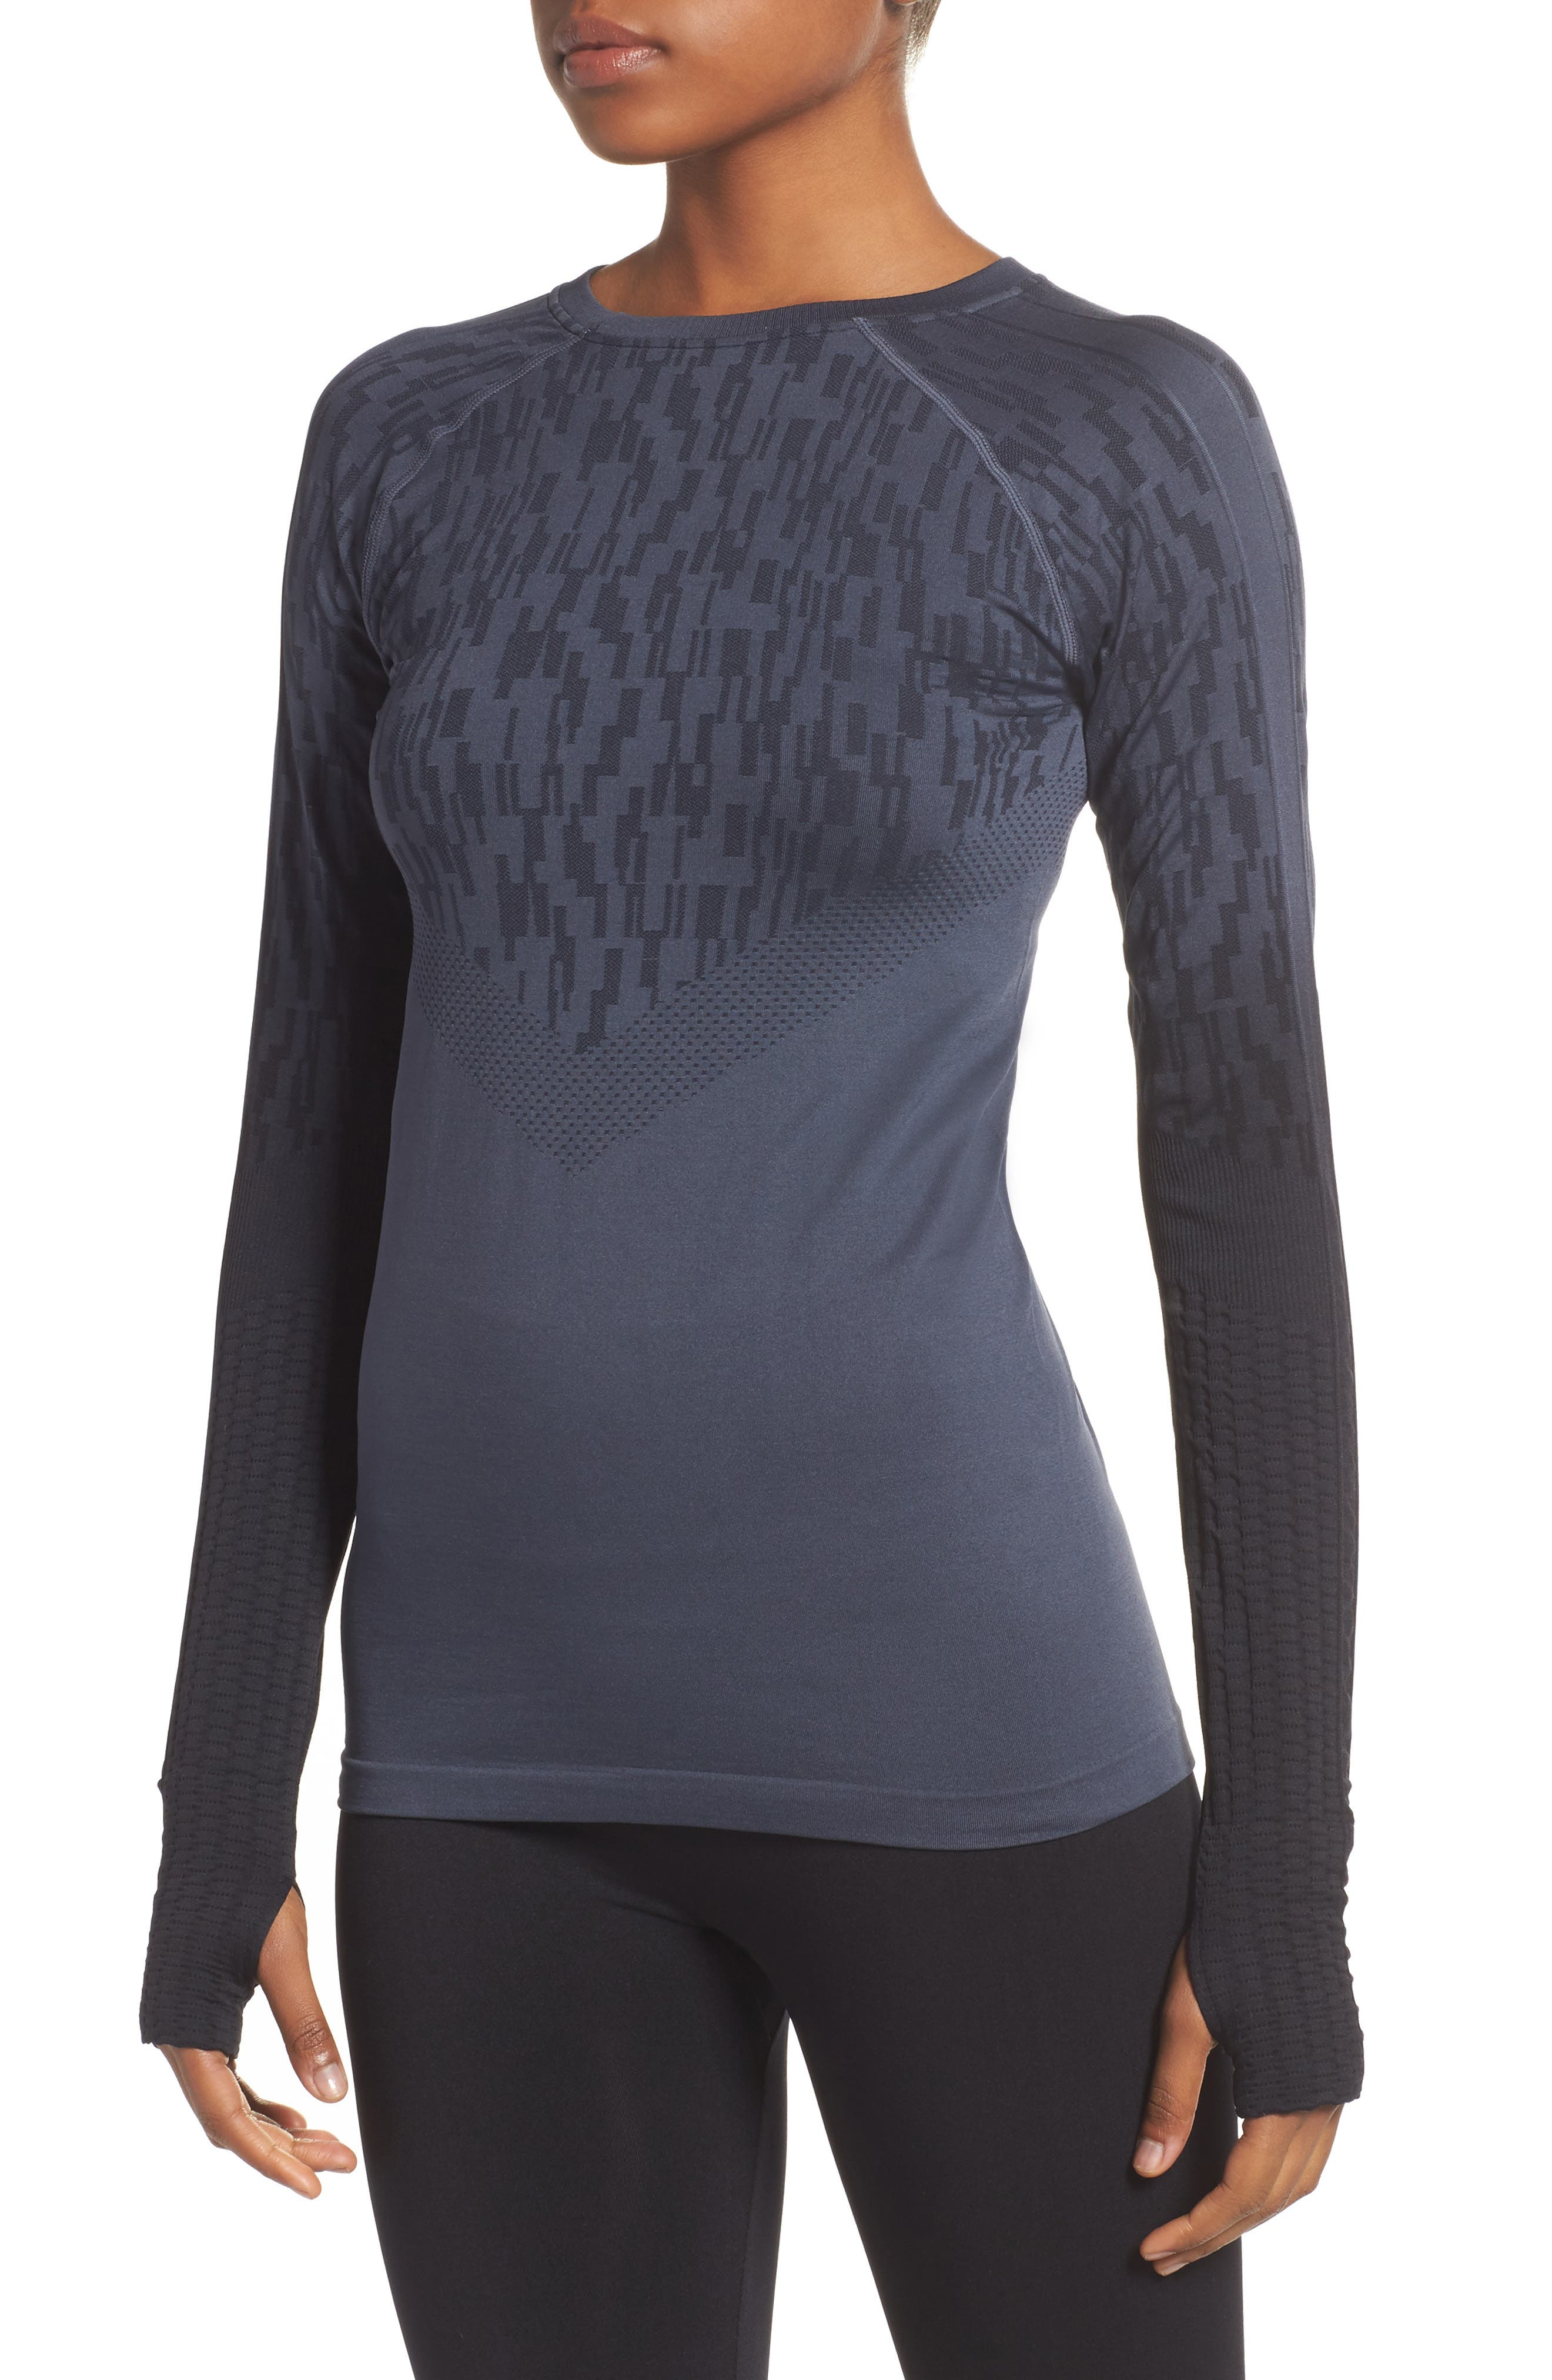 Odyssey Running Tee,                         Main,                         color,